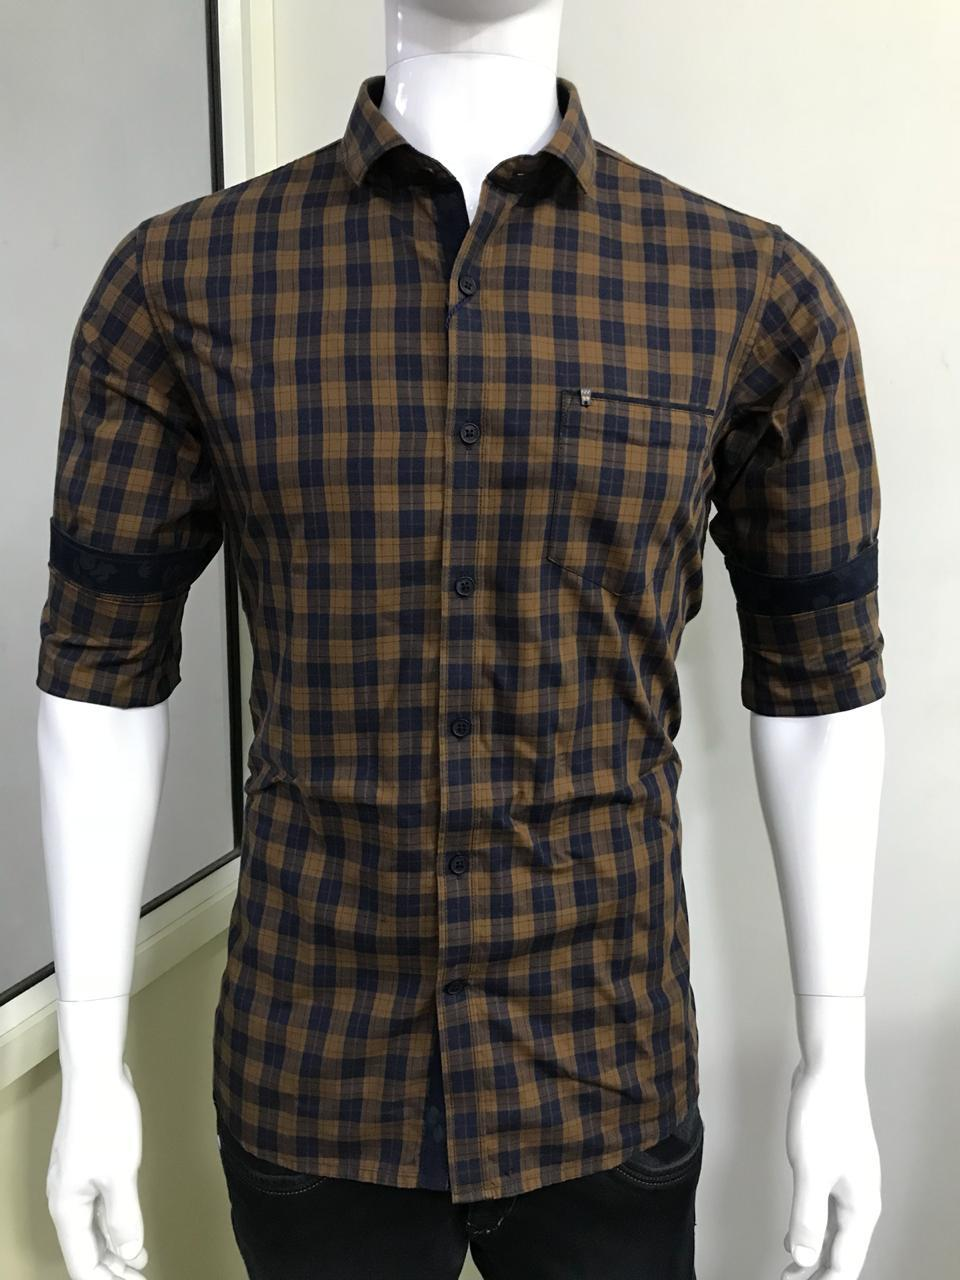 High quality office wear shirts